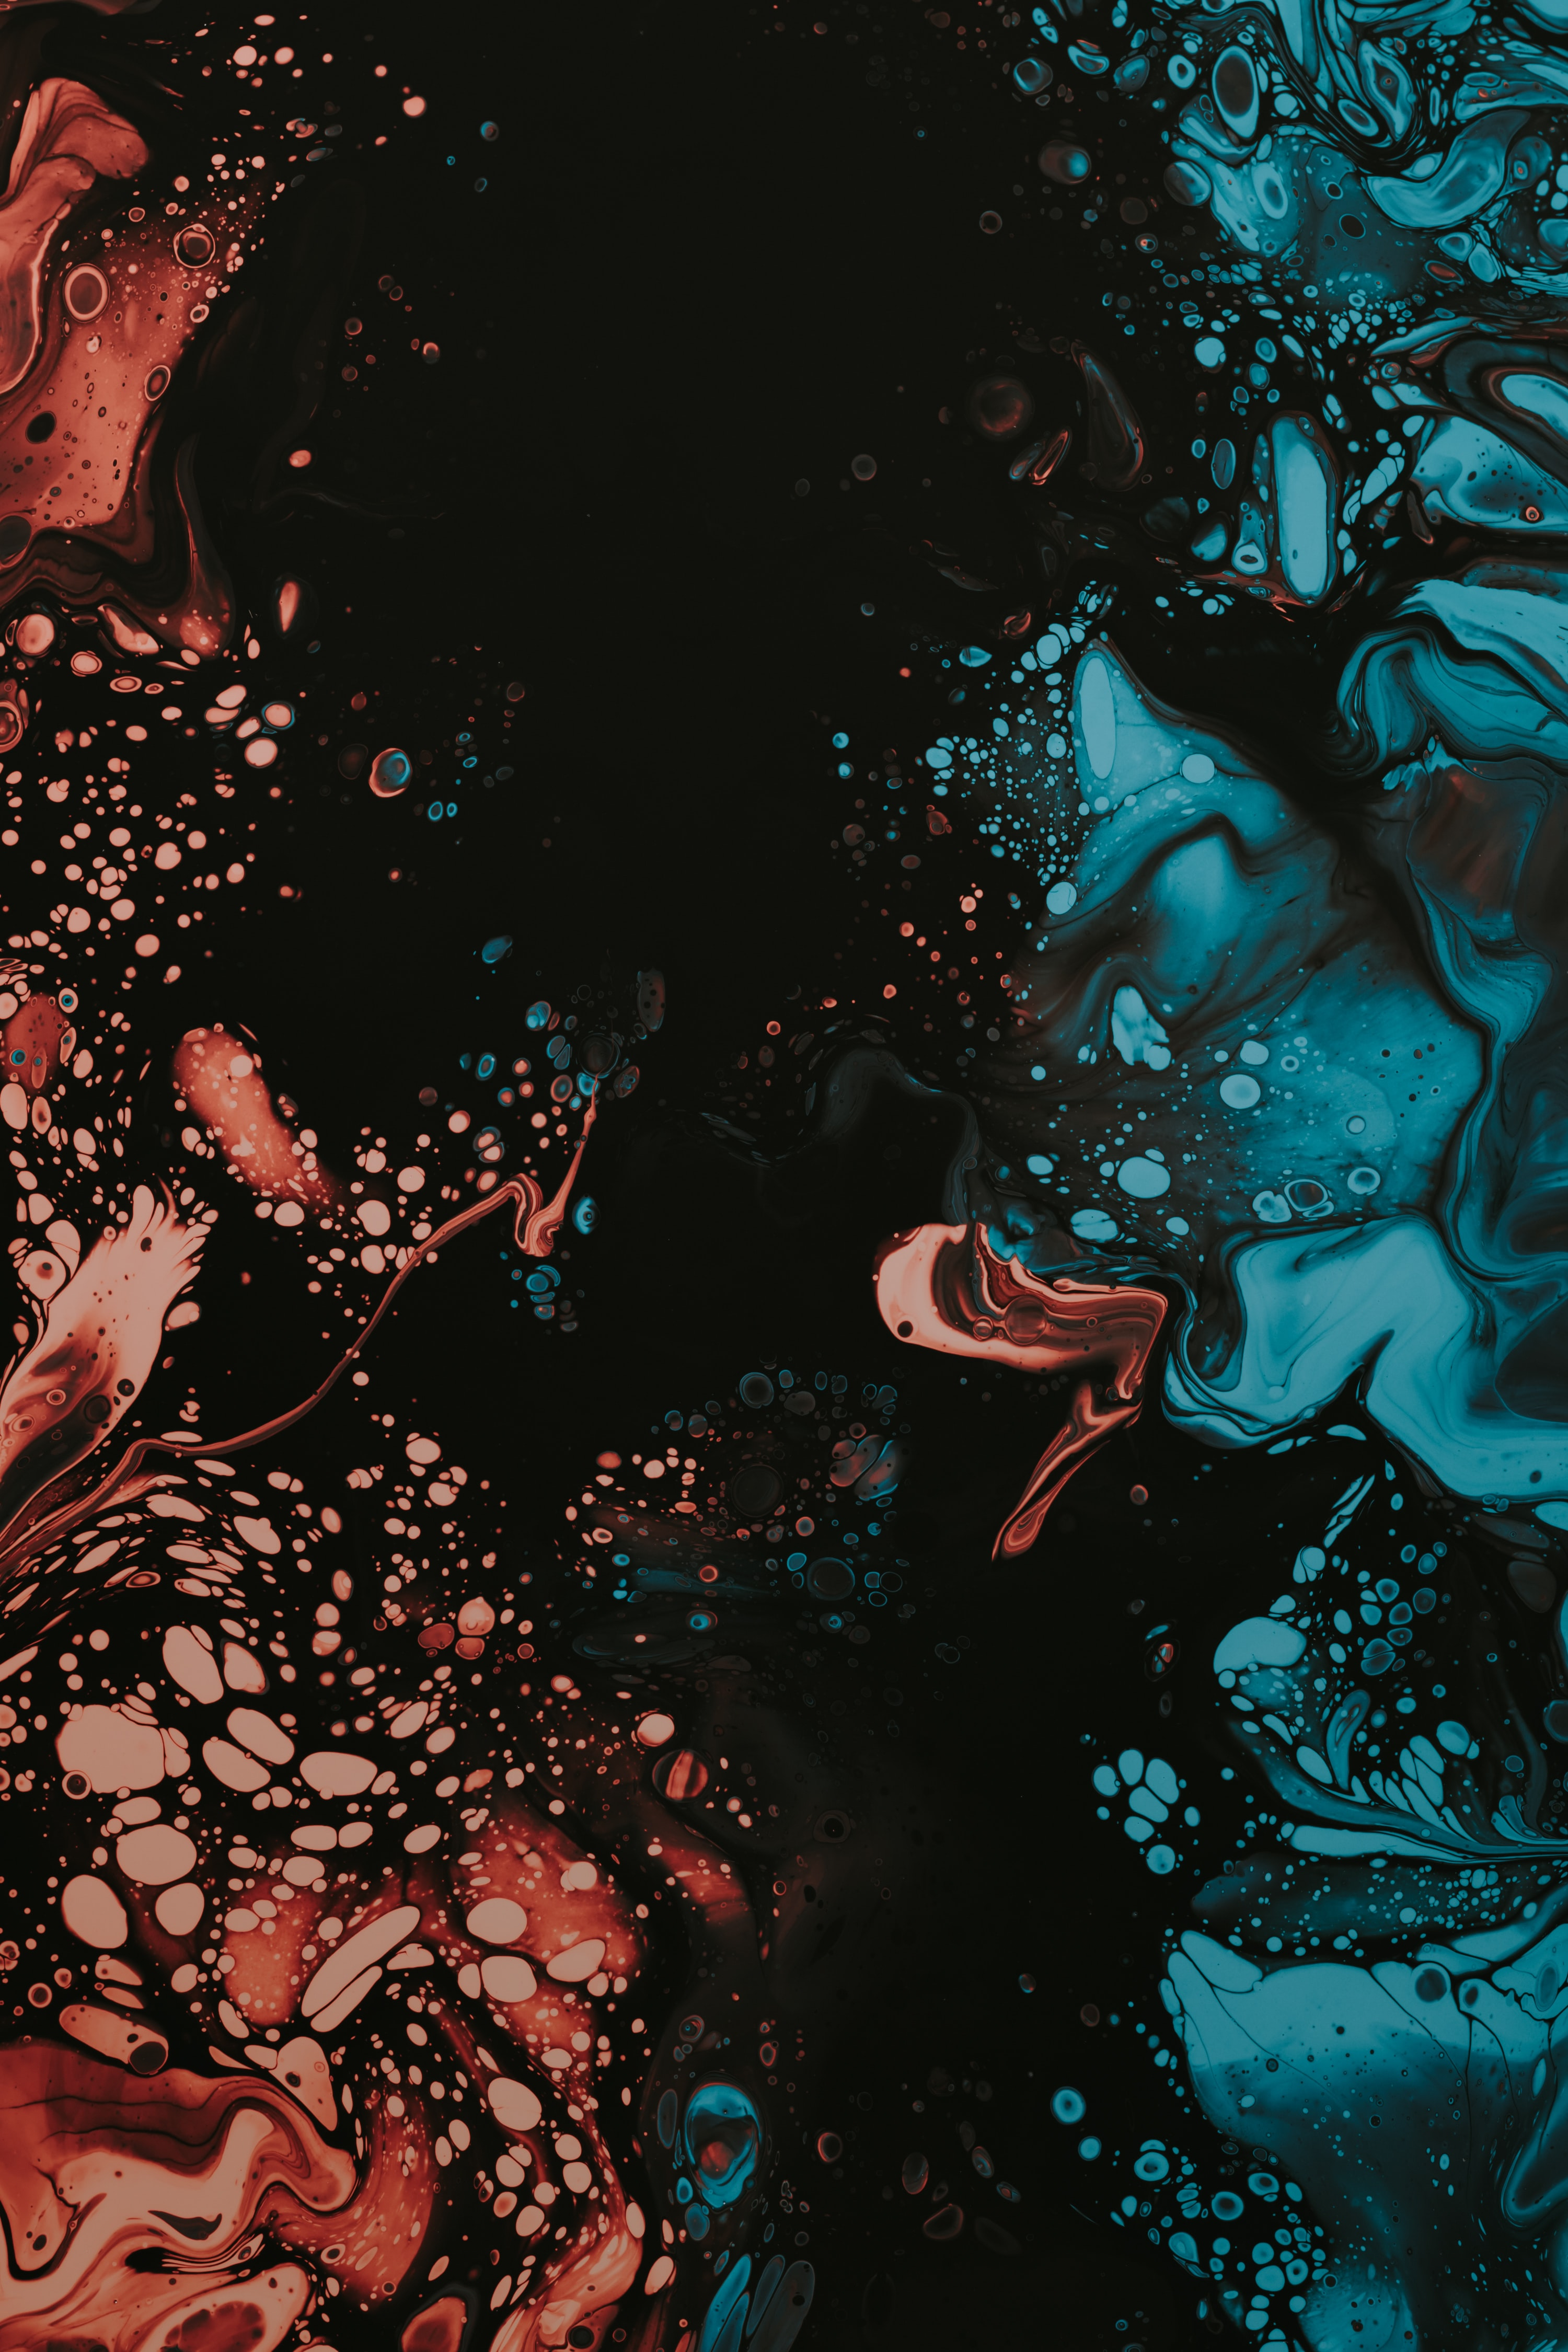 74810 download wallpaper Abstract, Divorces, Paint, Liquid screensavers and pictures for free